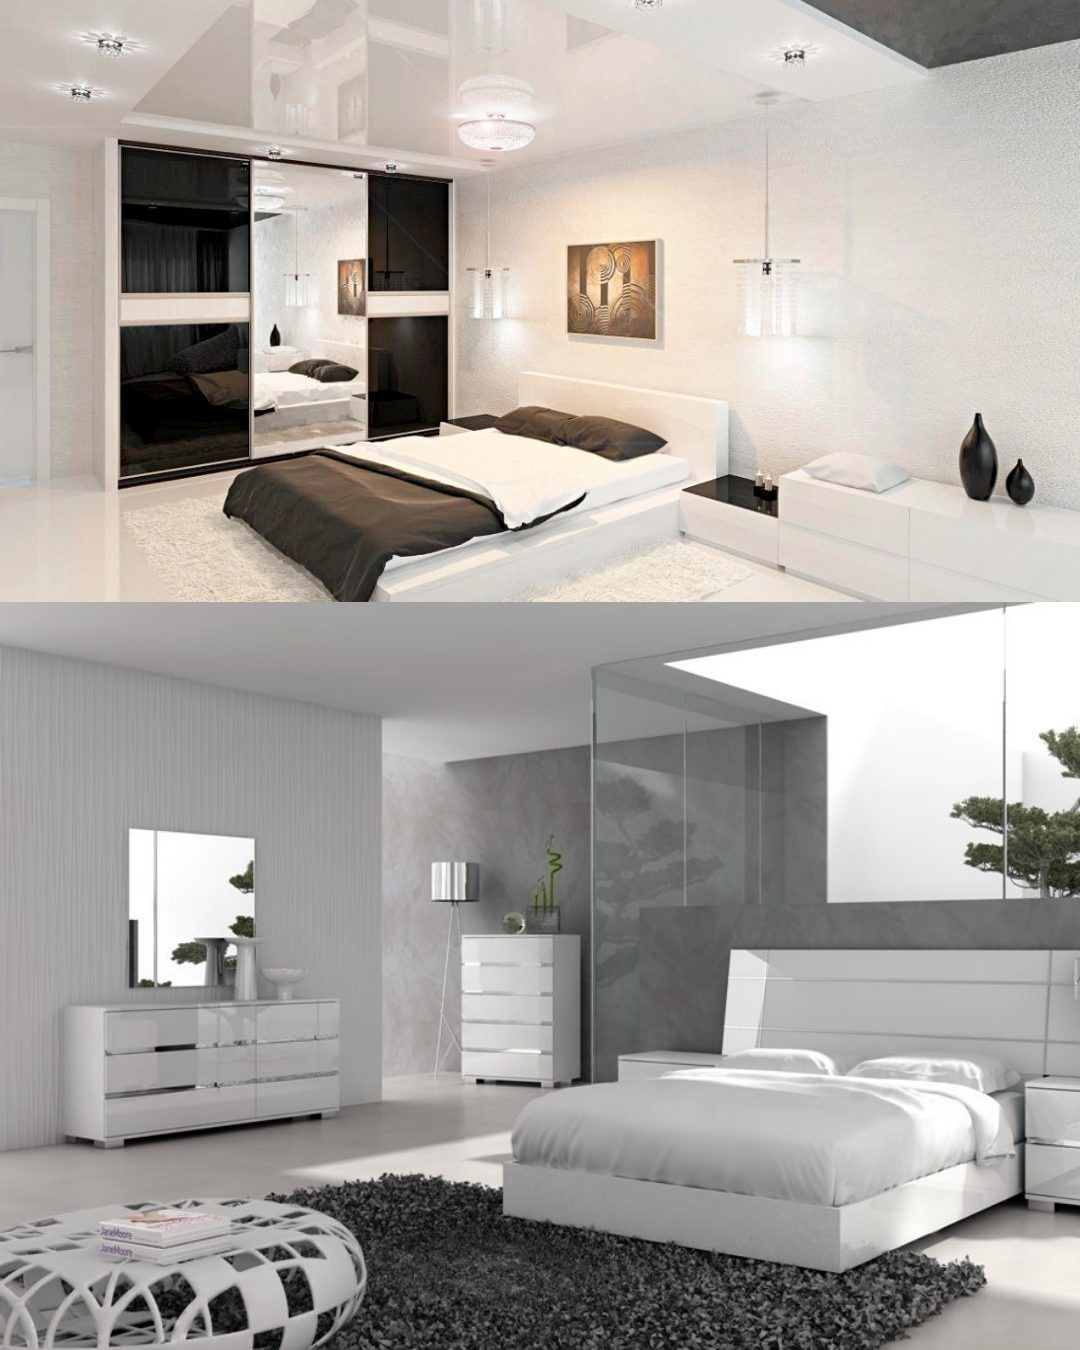 Best Bedroom Ideas For Couples For Your Valentine Moments Modern Bedroom Bedroom Designs For Couples Modern Bedroom Design